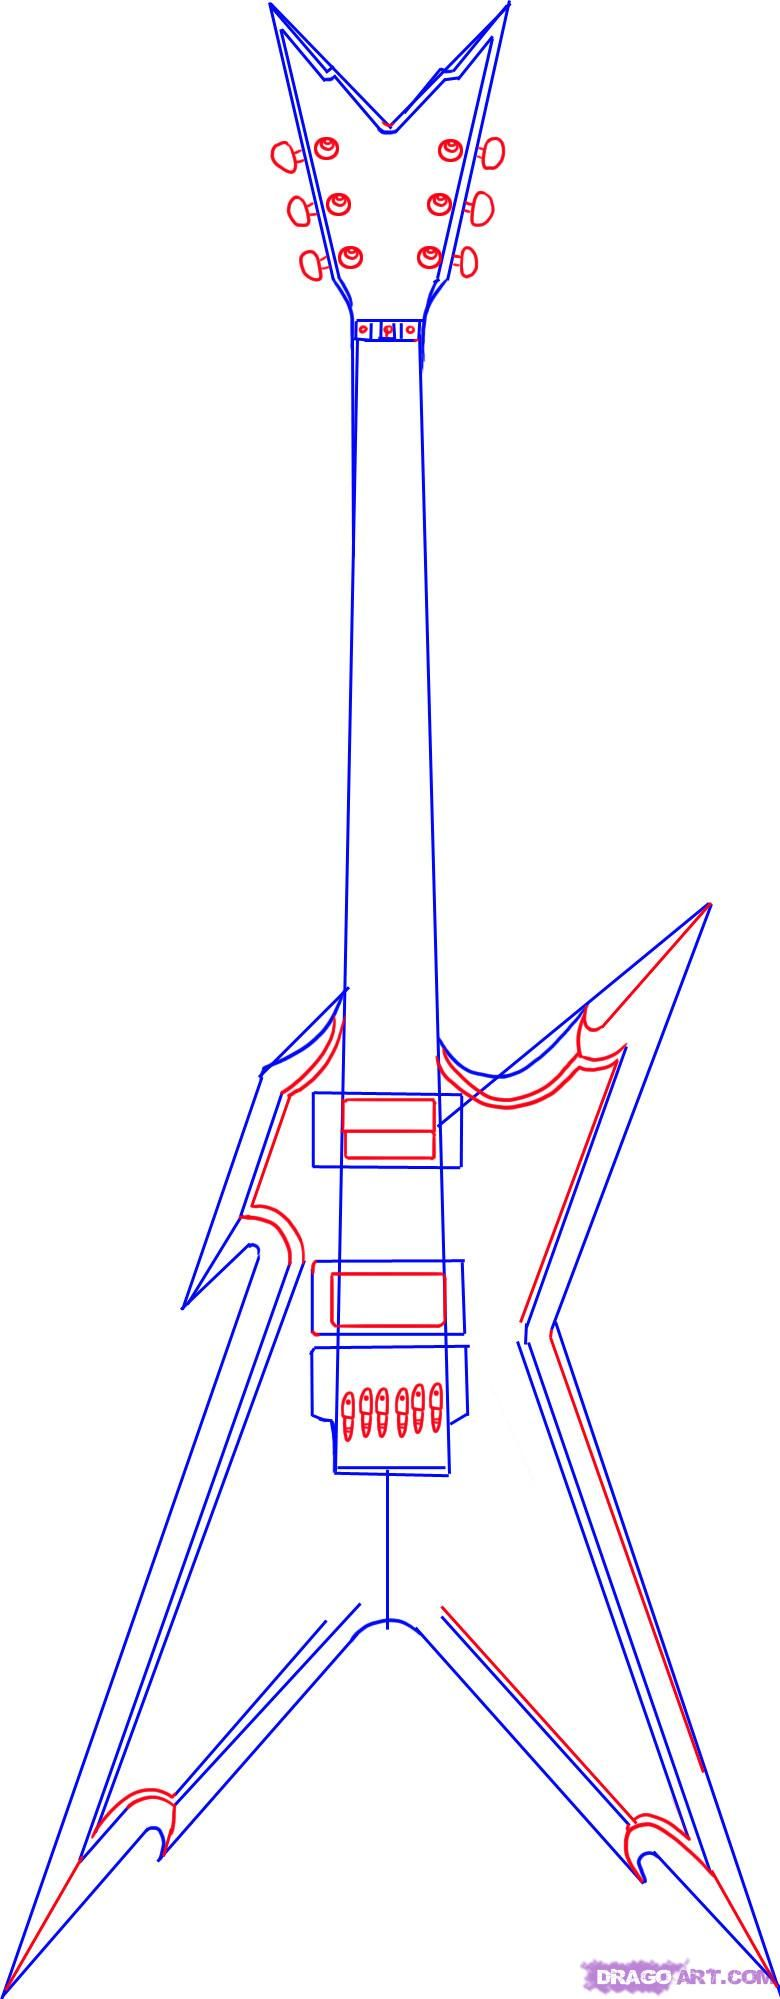 780x1999 How To Draw An Electric Guitar For Kids Step By Step Guitar